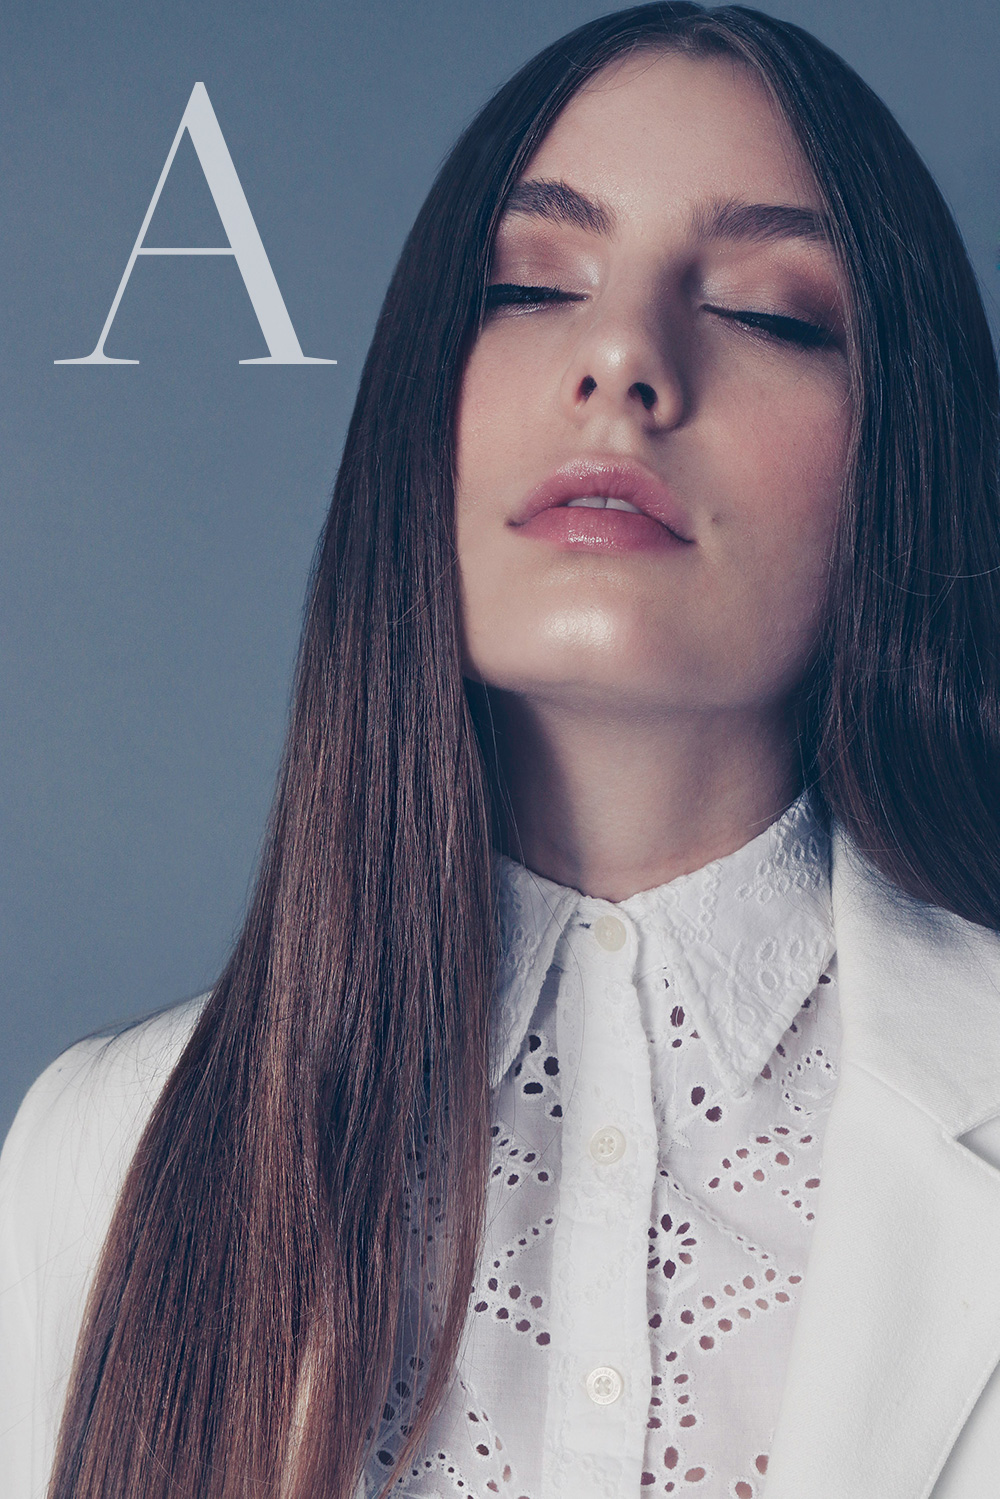 amora_beauty_studio_home_woman_fashion_model_indie_white_coat_eyes_closed_A.jpg